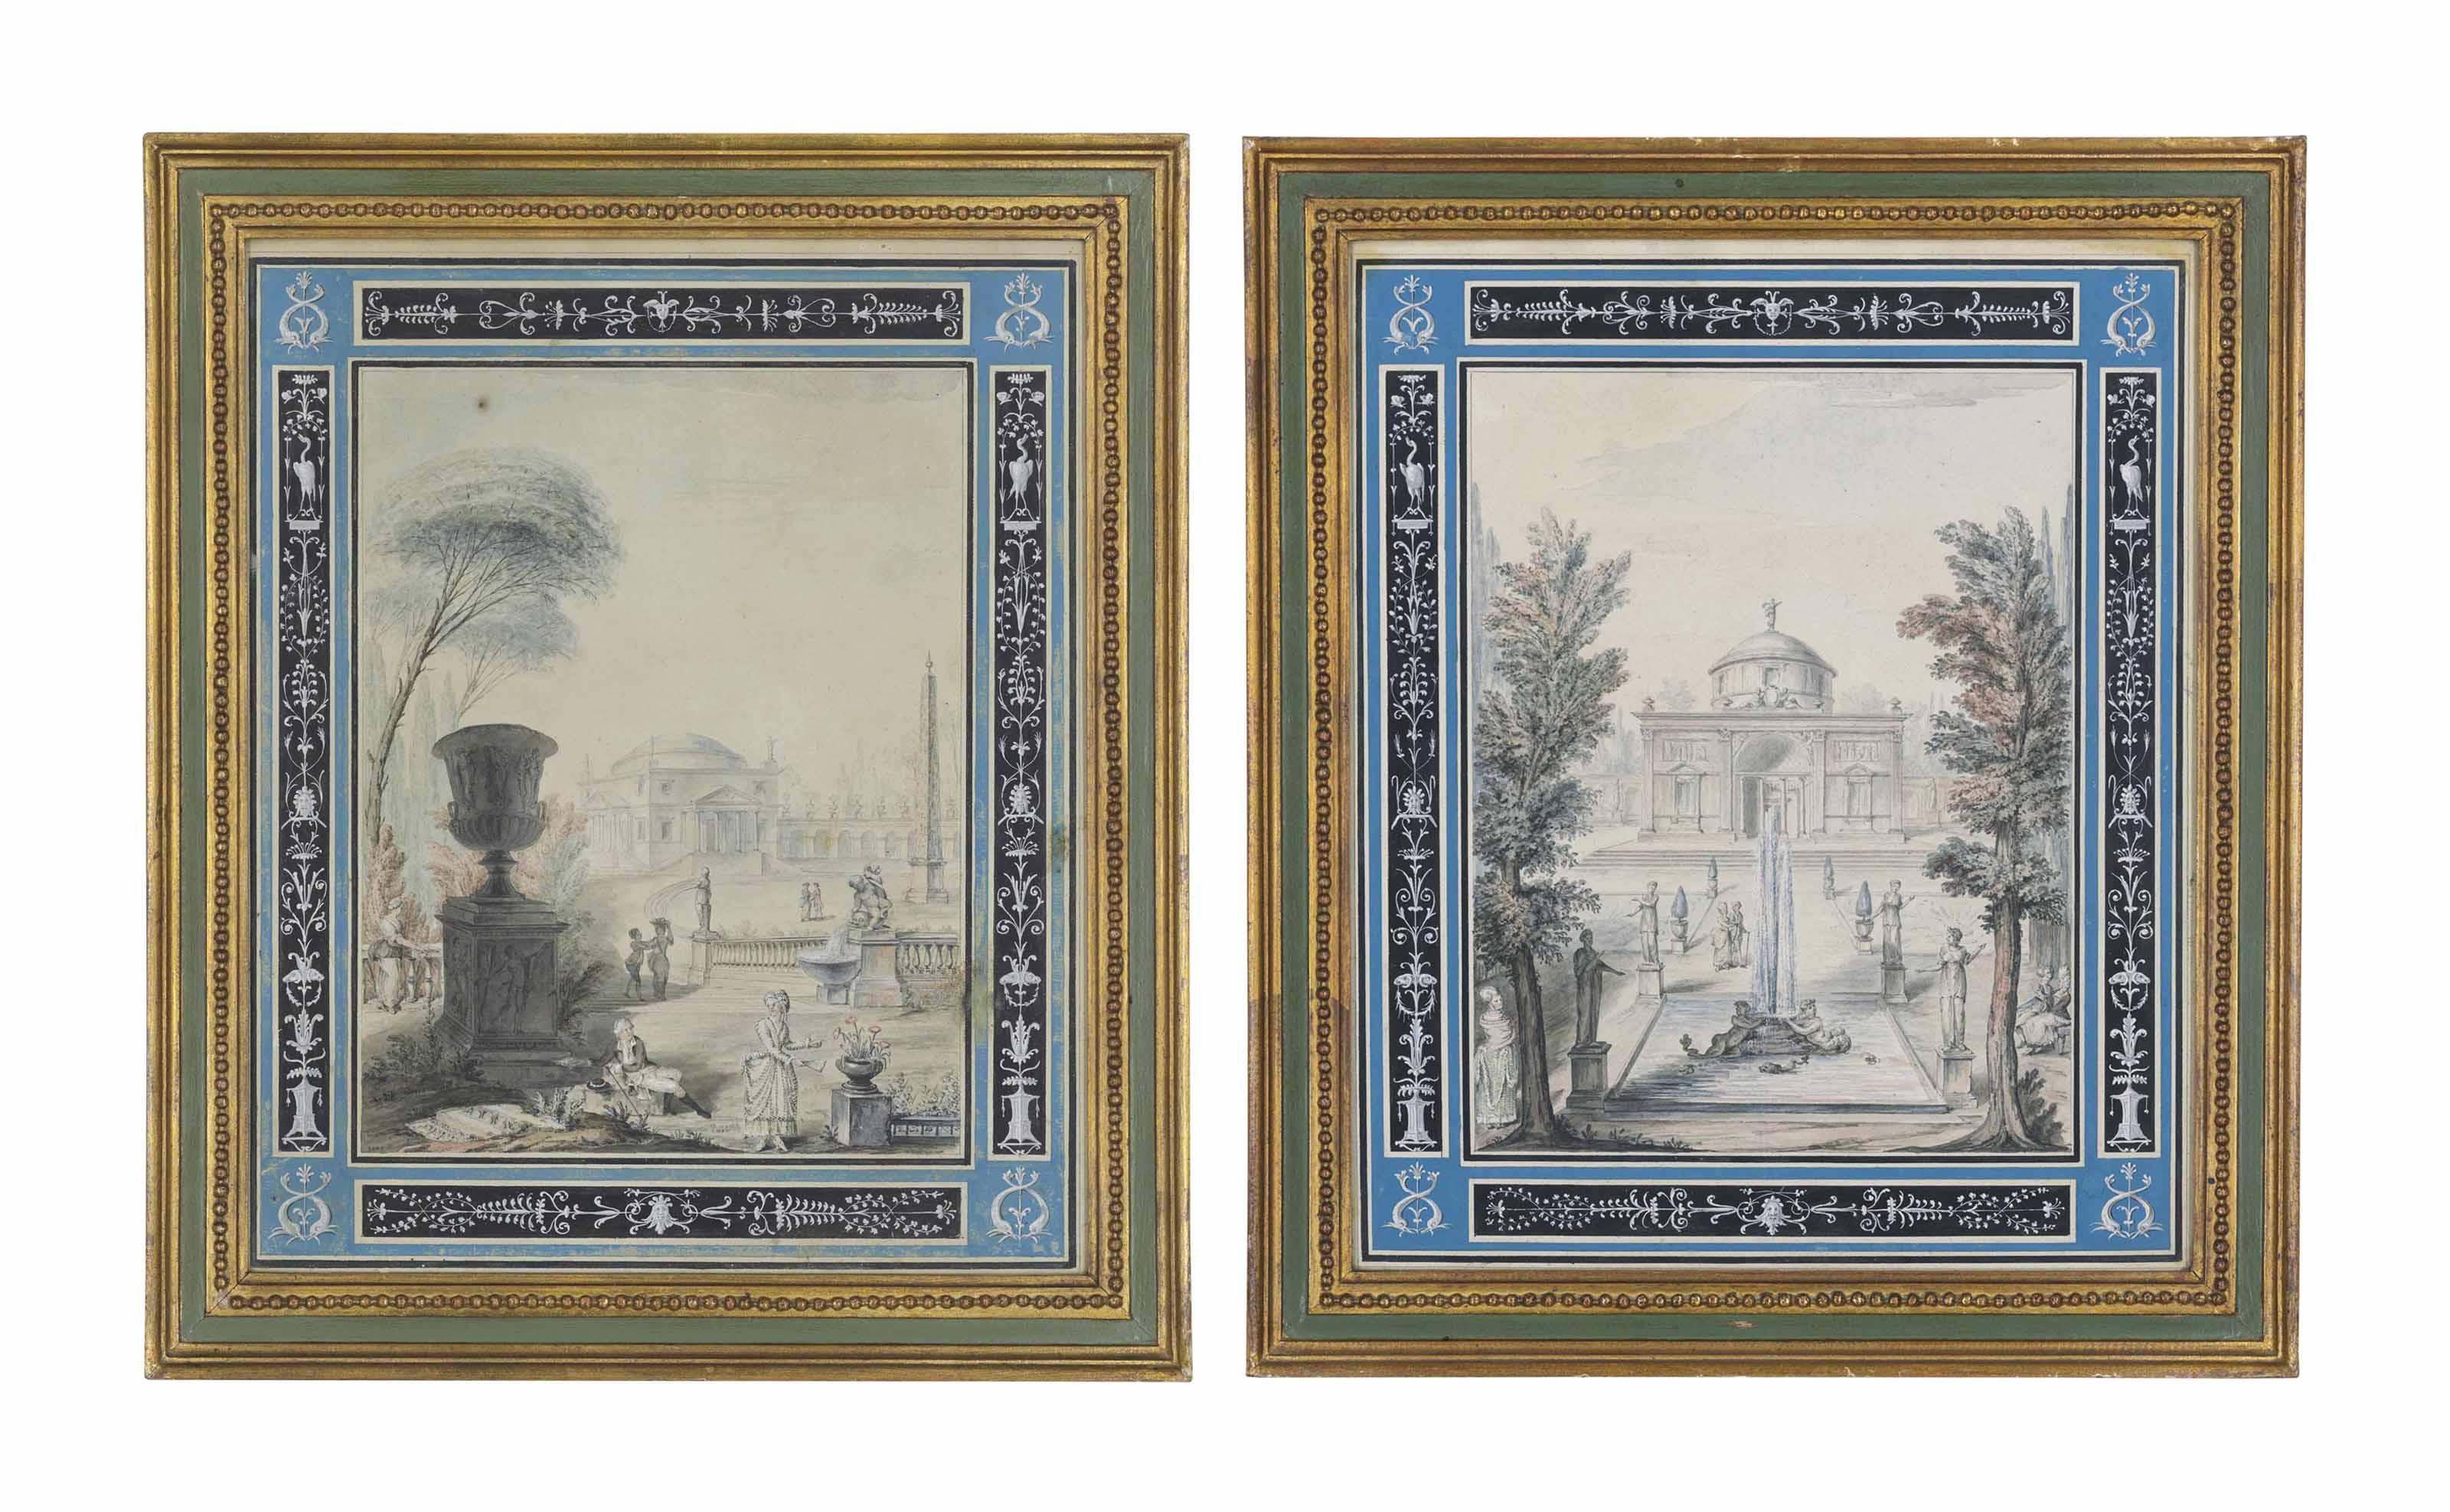 Two capricci with figures in classical gardens surrounded by a decorative border